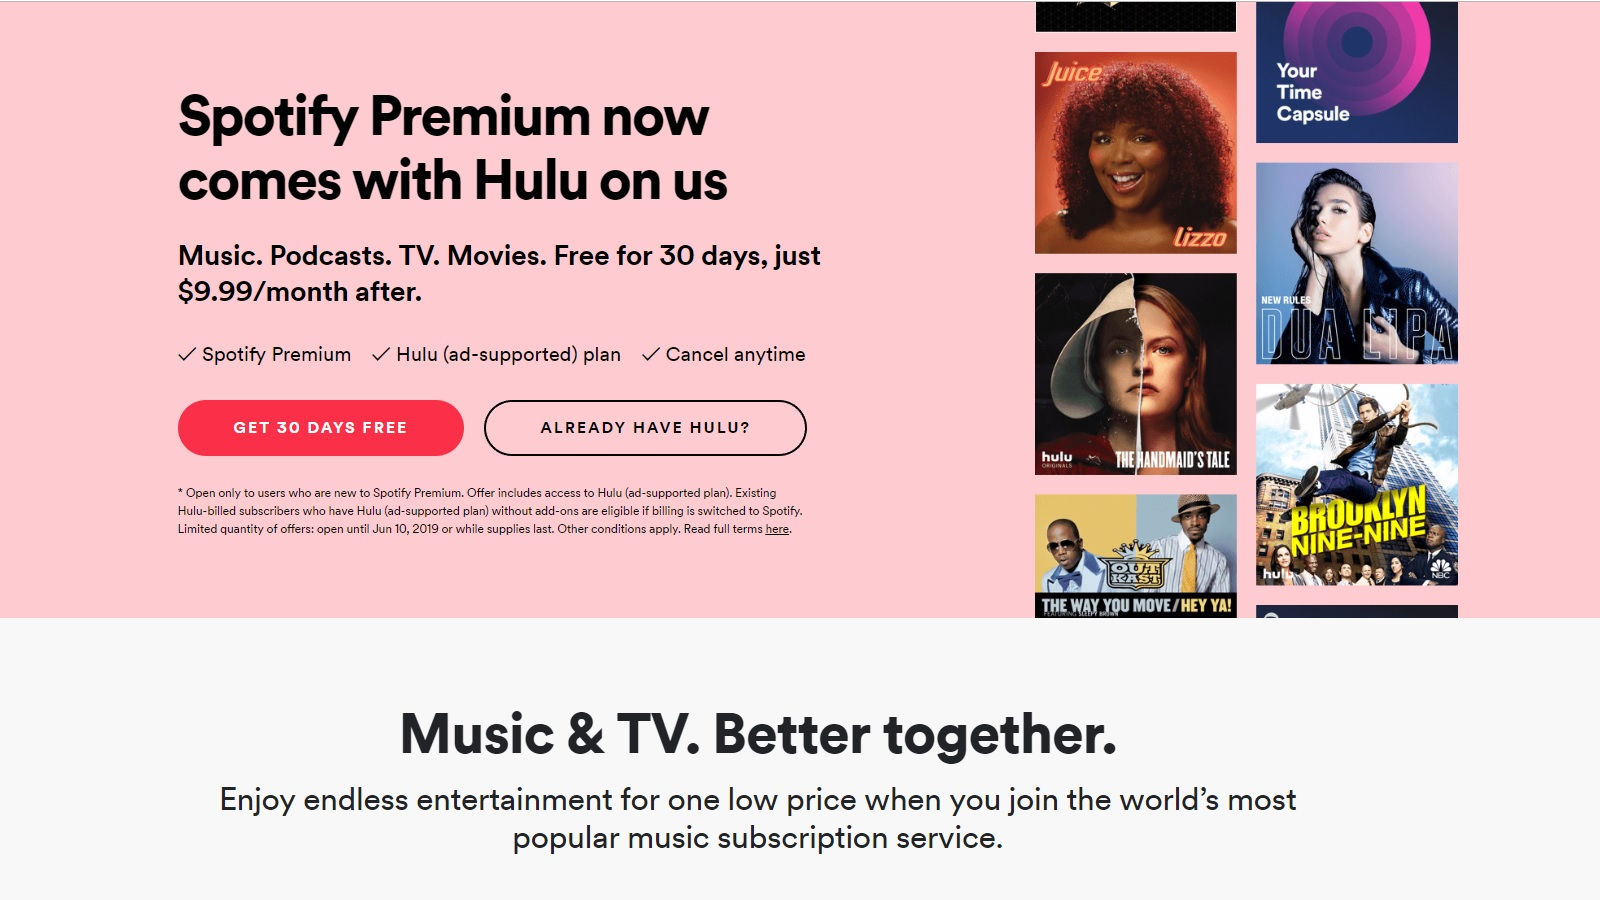 Hulu is Now Included for Free as Part of Spotify Premium